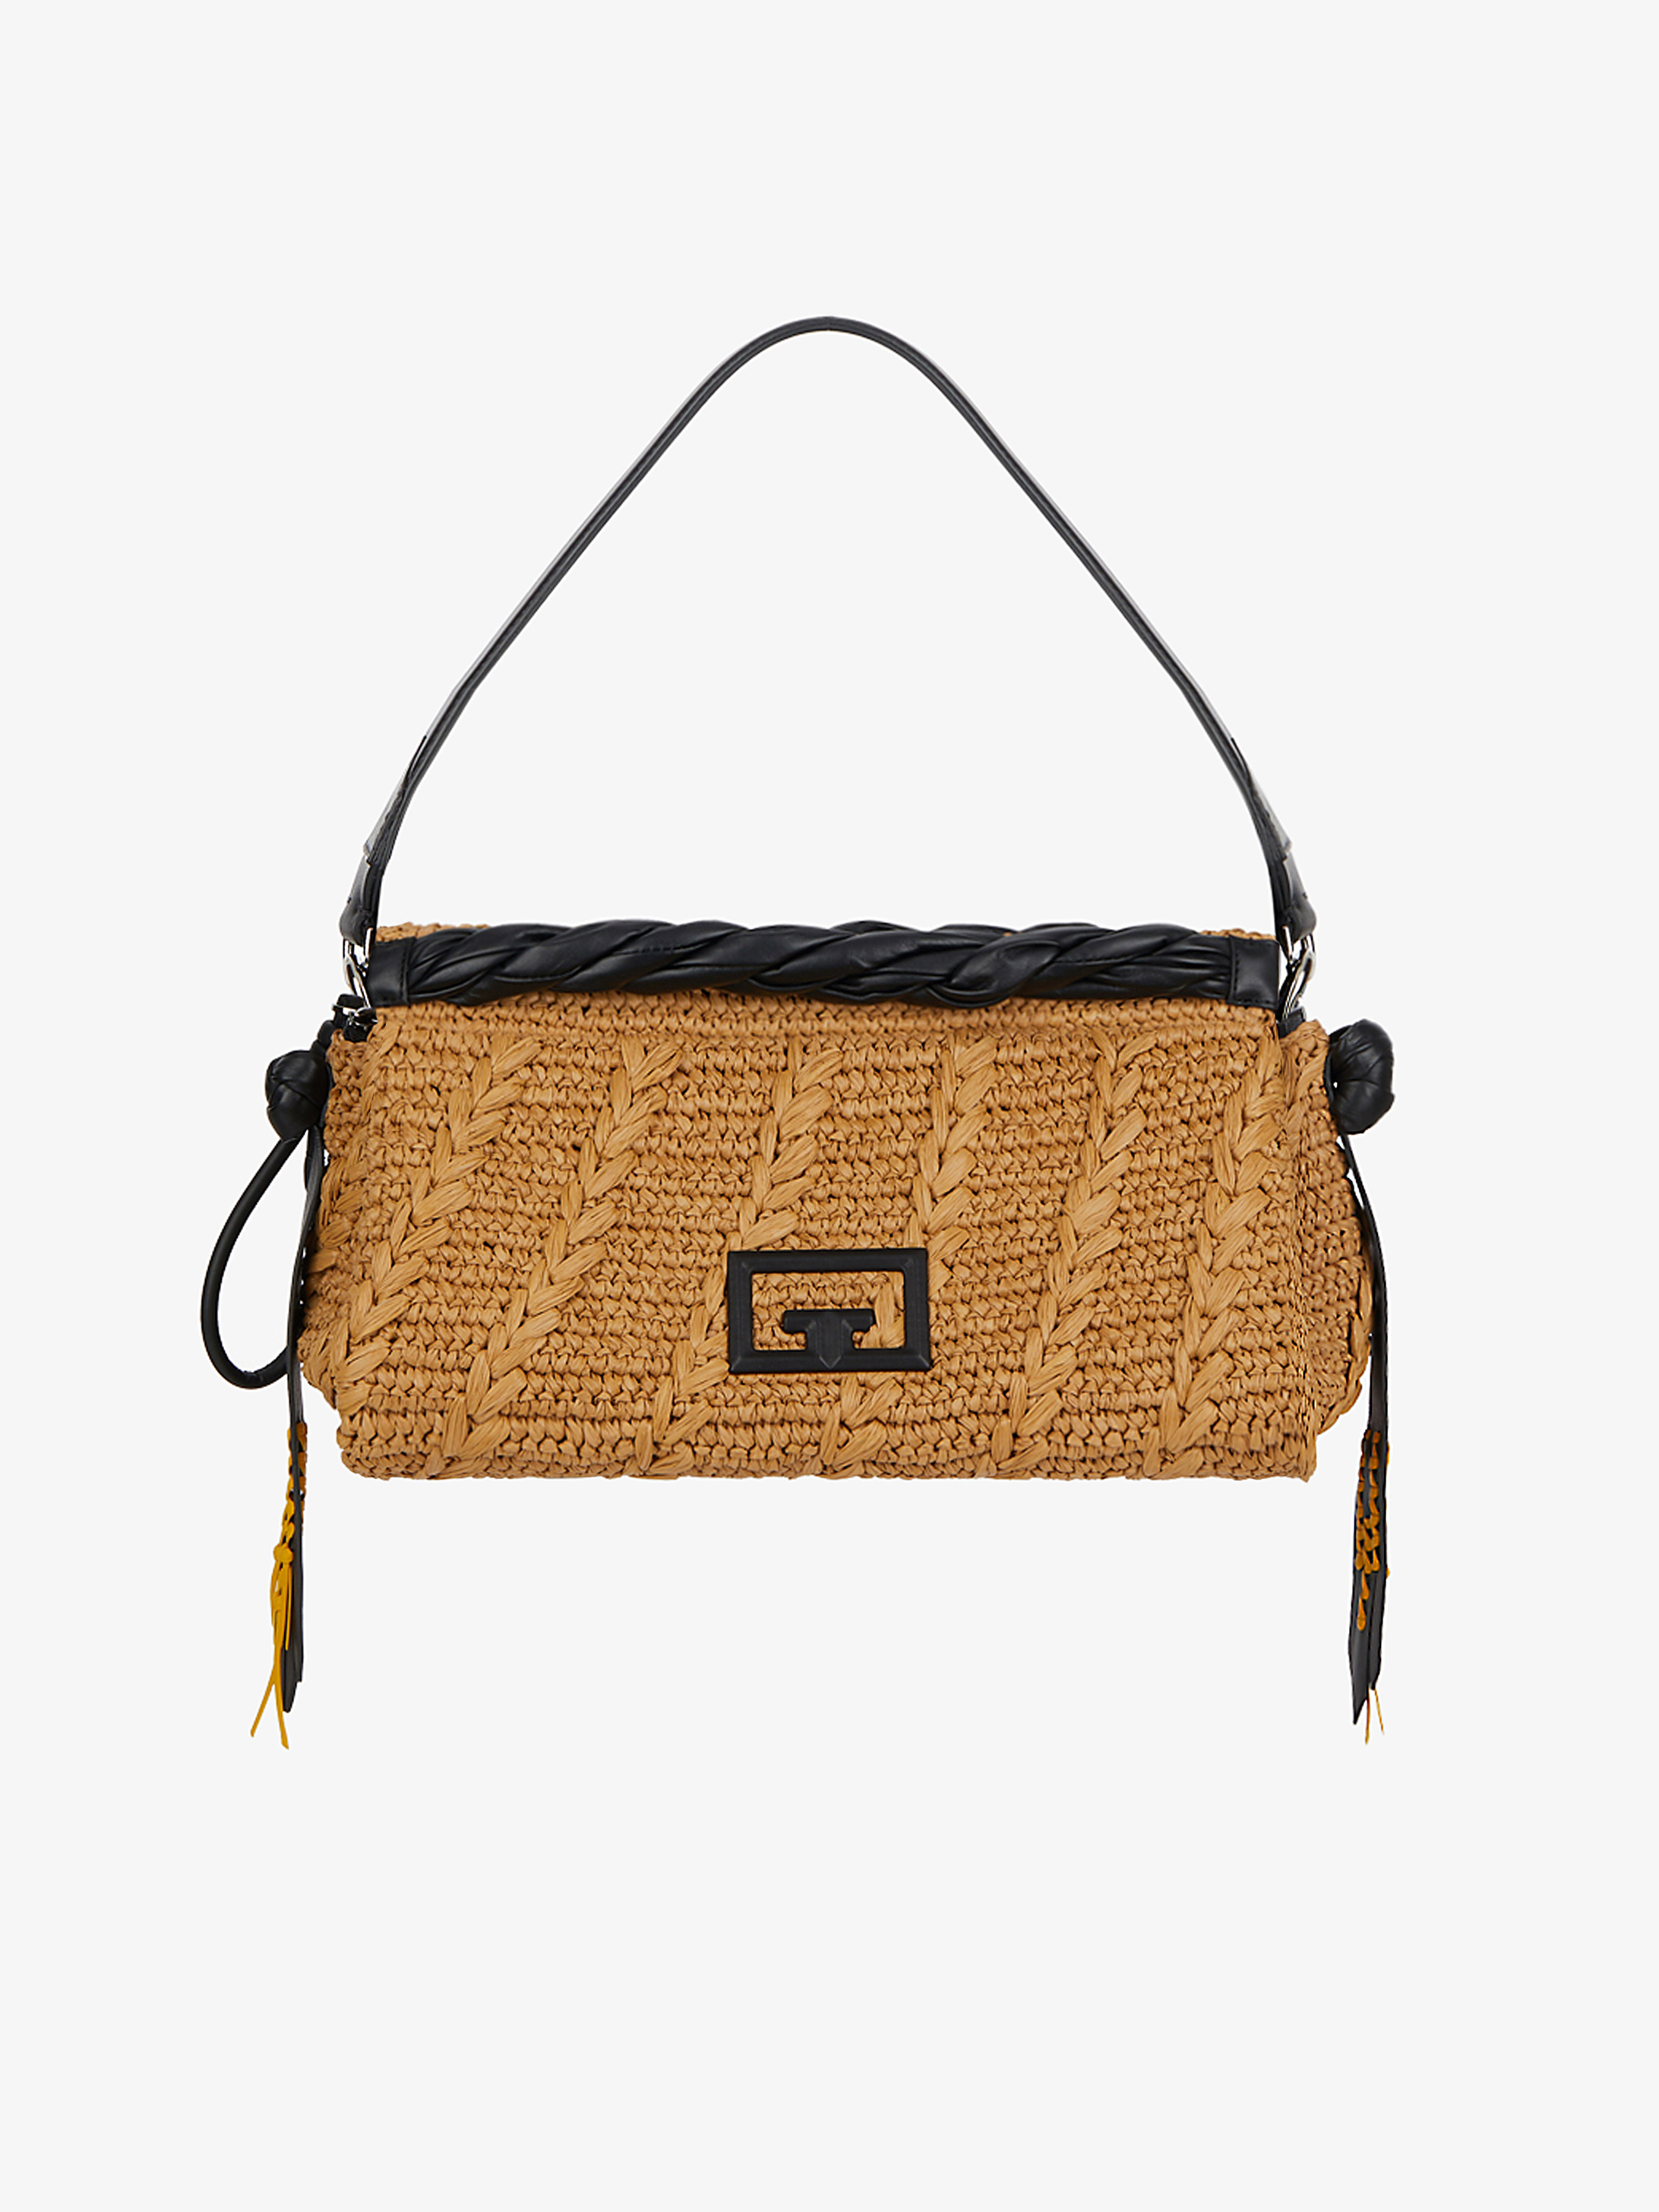 Large ID93 bag in raffia and leather